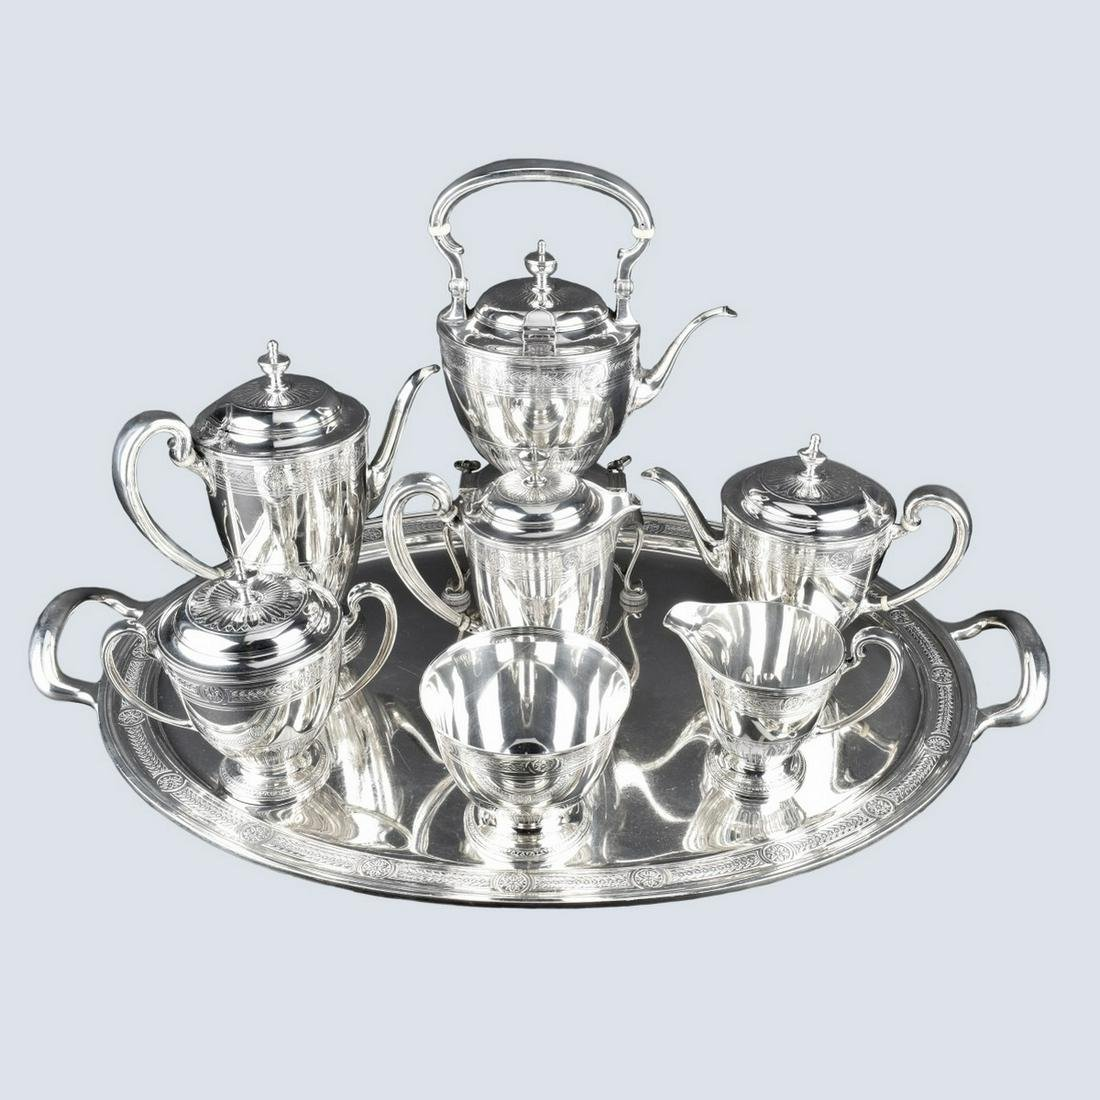 Tiffany Tea and Coffee Set